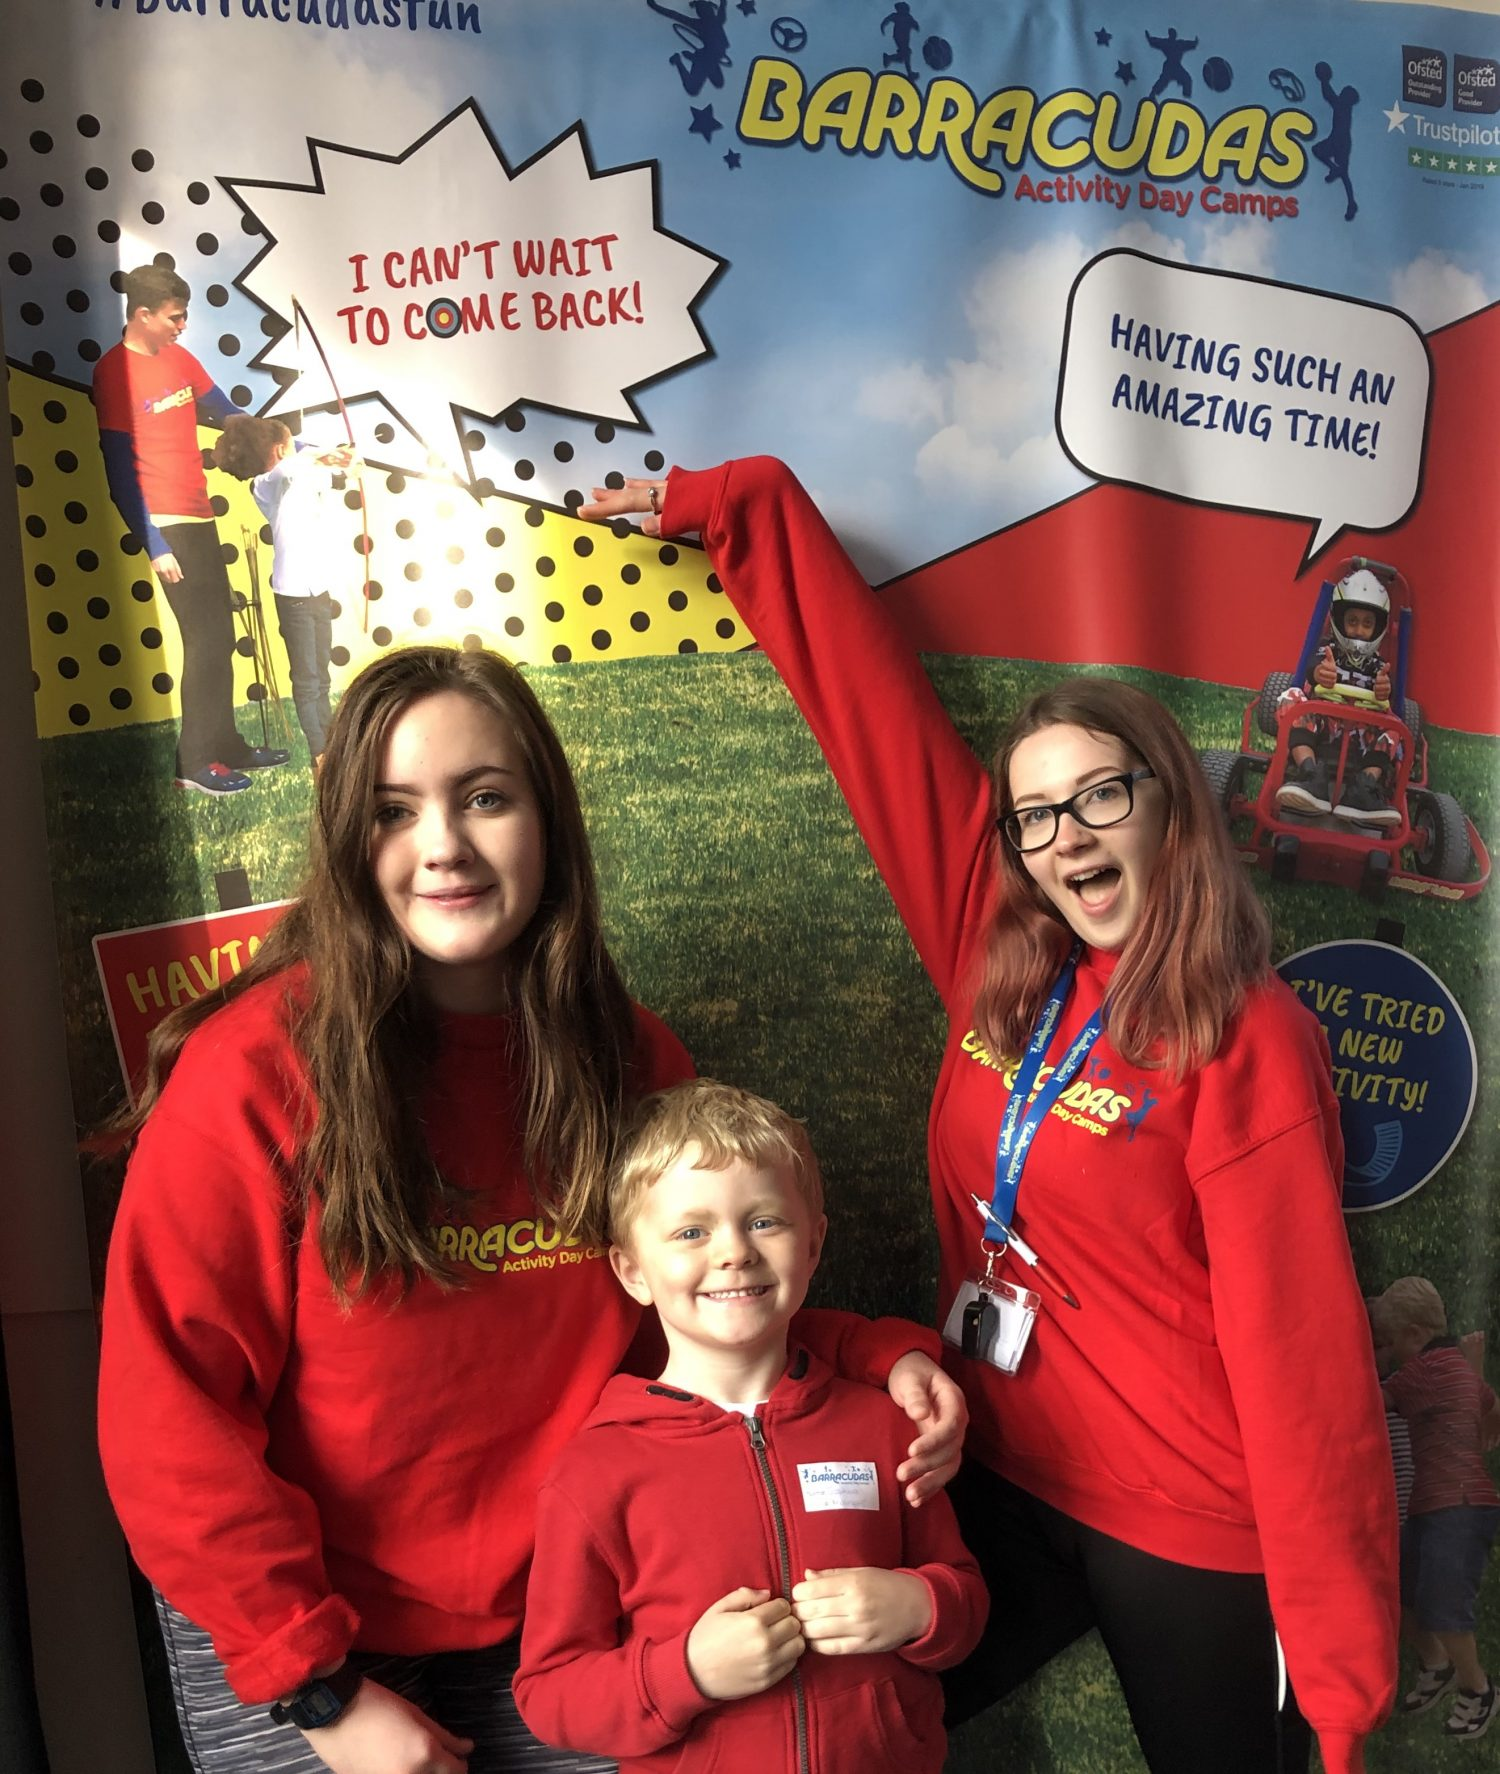 Emma, Georgie and Josh at Barracudas Activity Day Camps